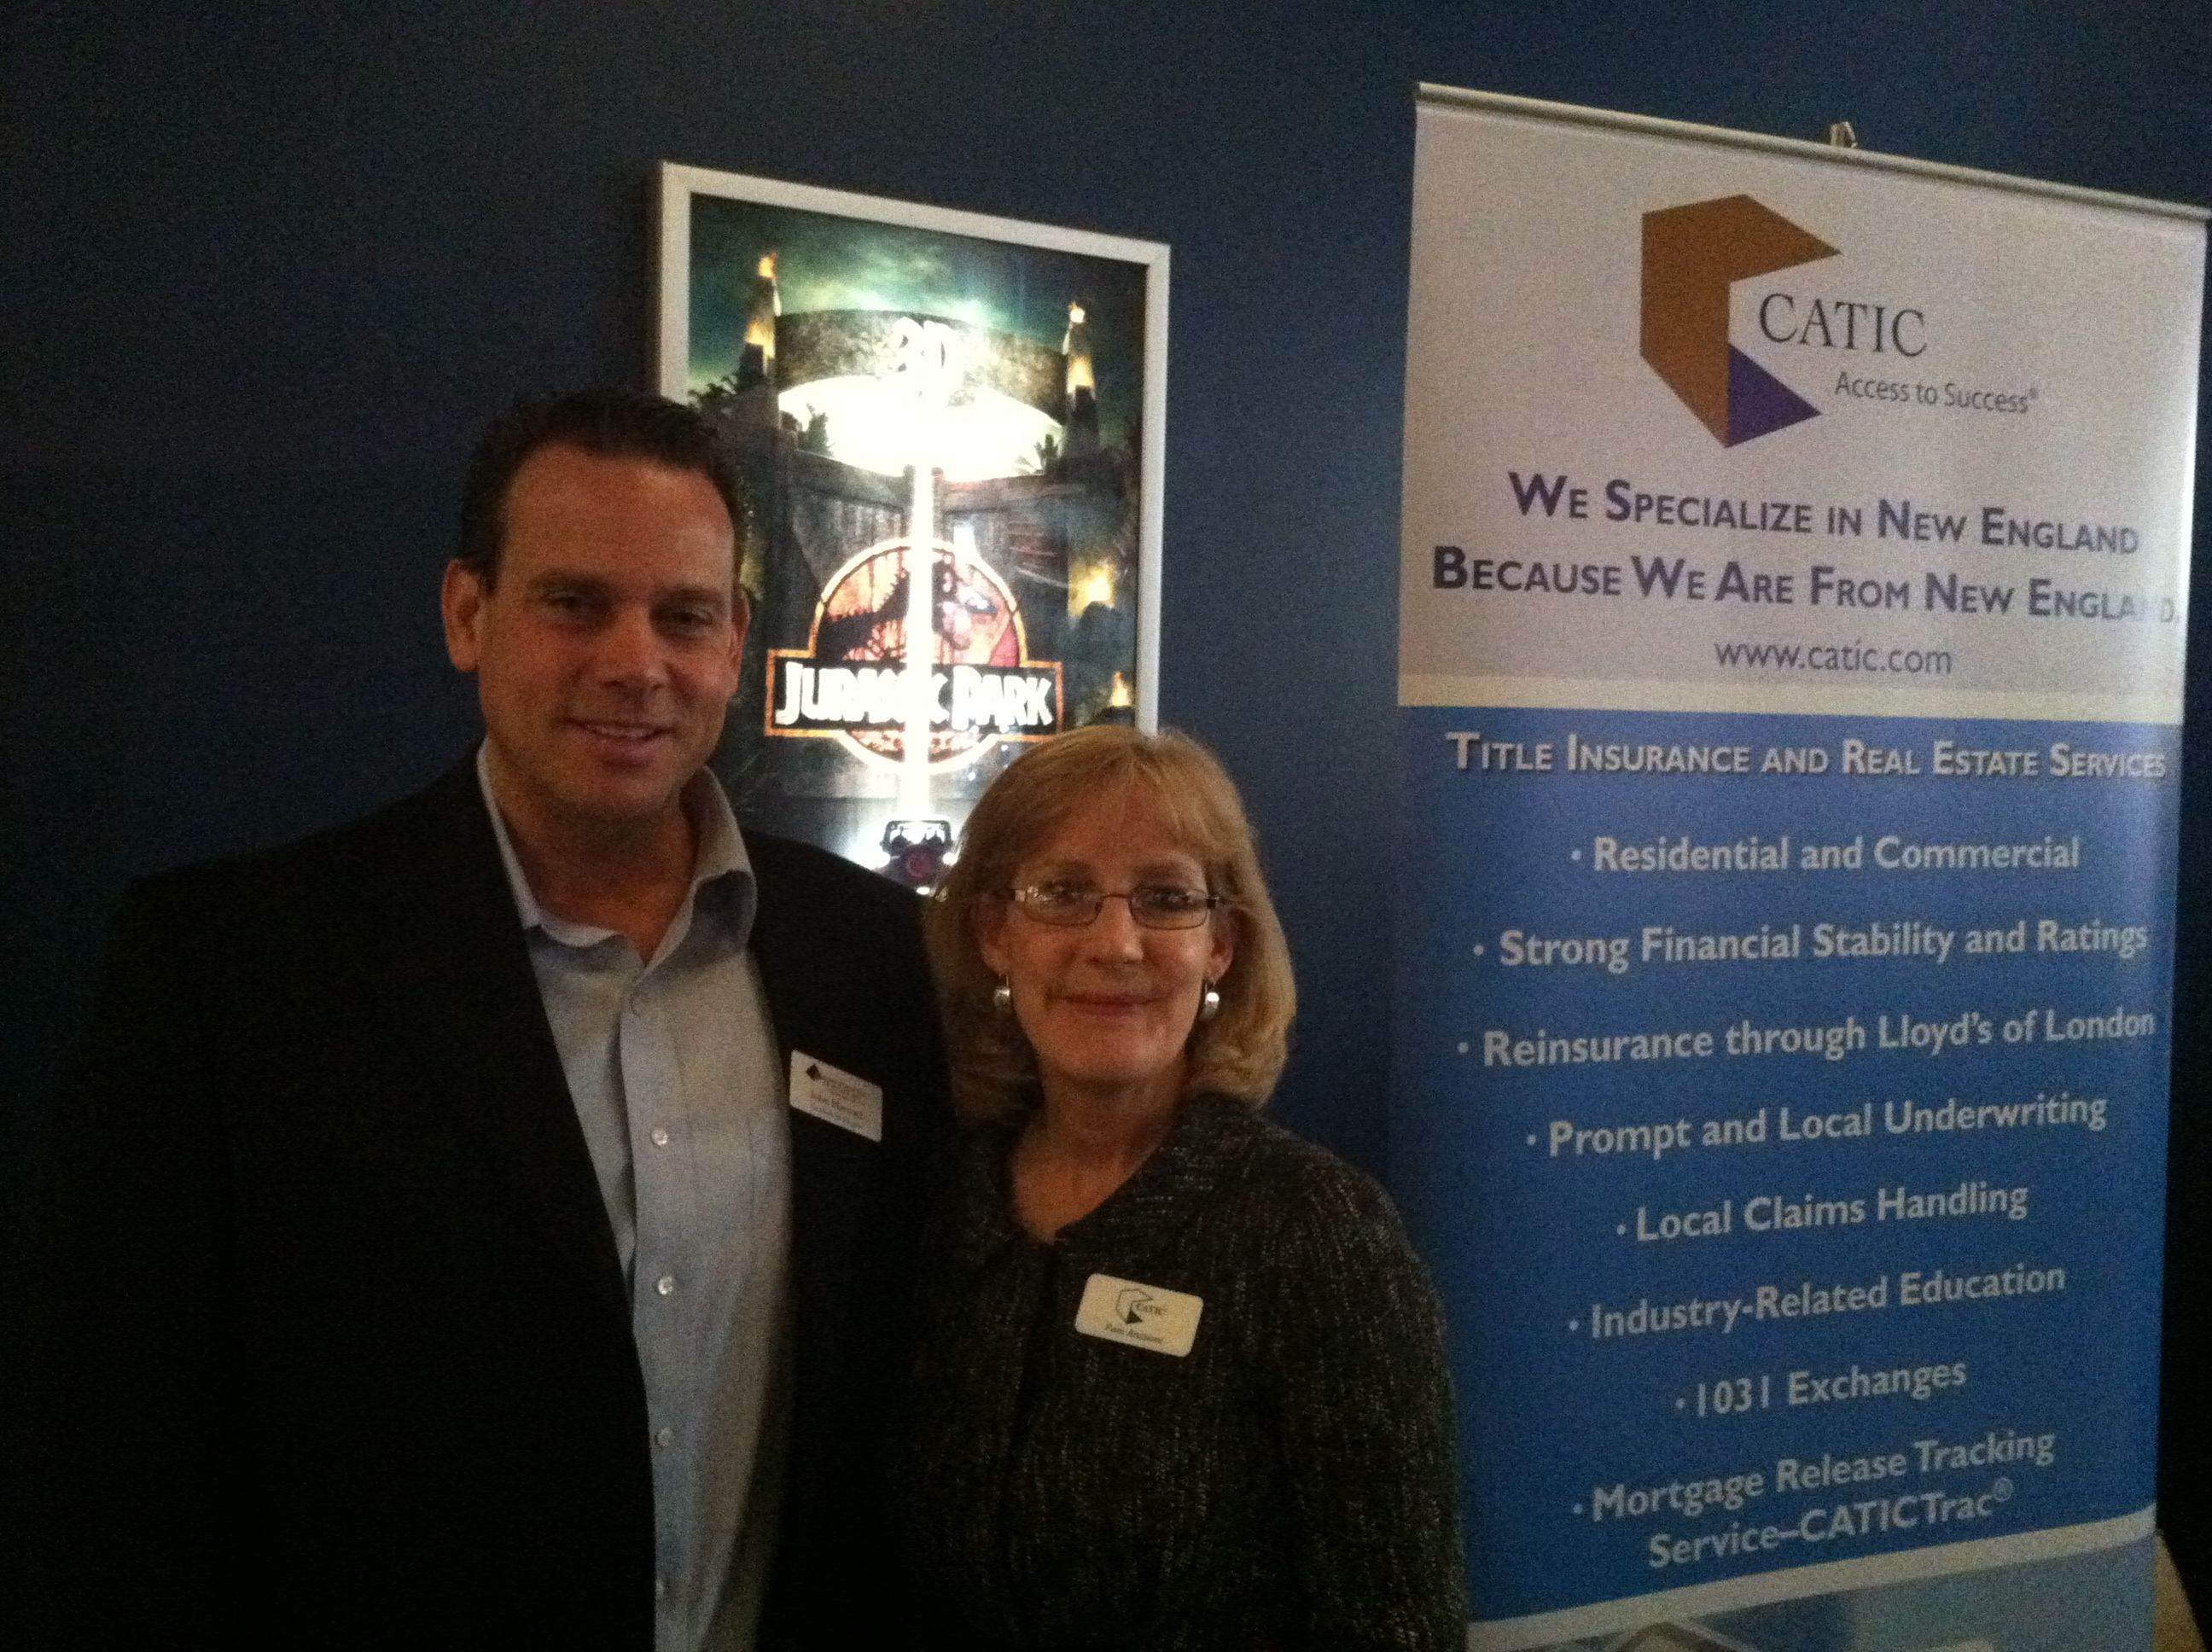 Here Is A Photo Of John Marroni And Pam Anzuoni From Catic At A Seminar Carter Law Office Organized At Jordan Fu Title Insurance Lloyd S Of London Underwriting